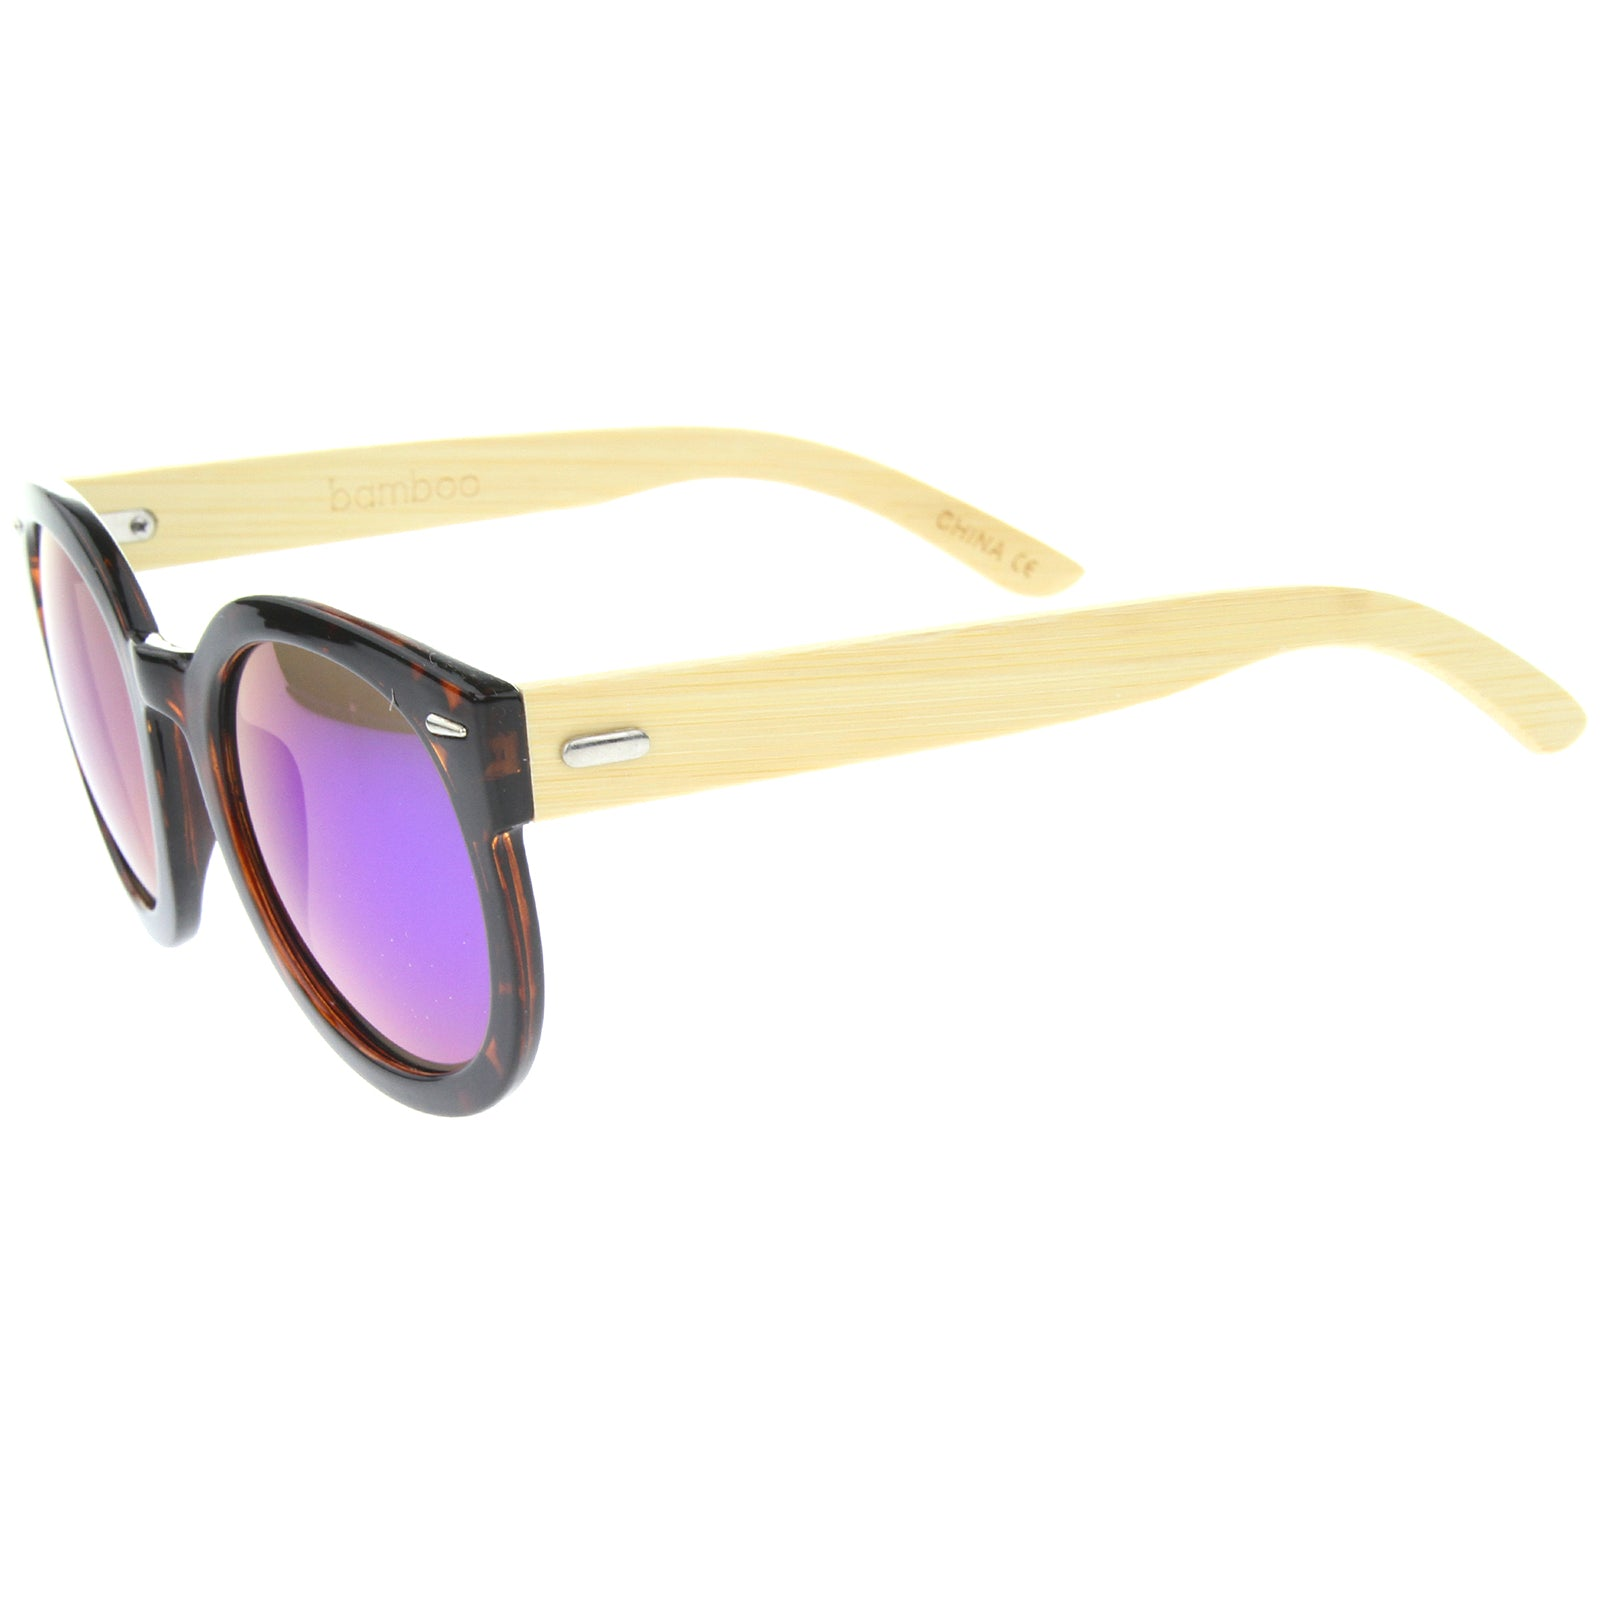 Womens Oversized Sunglasses With UV400 Protected Mirrored Lens - sunglass.la - 15